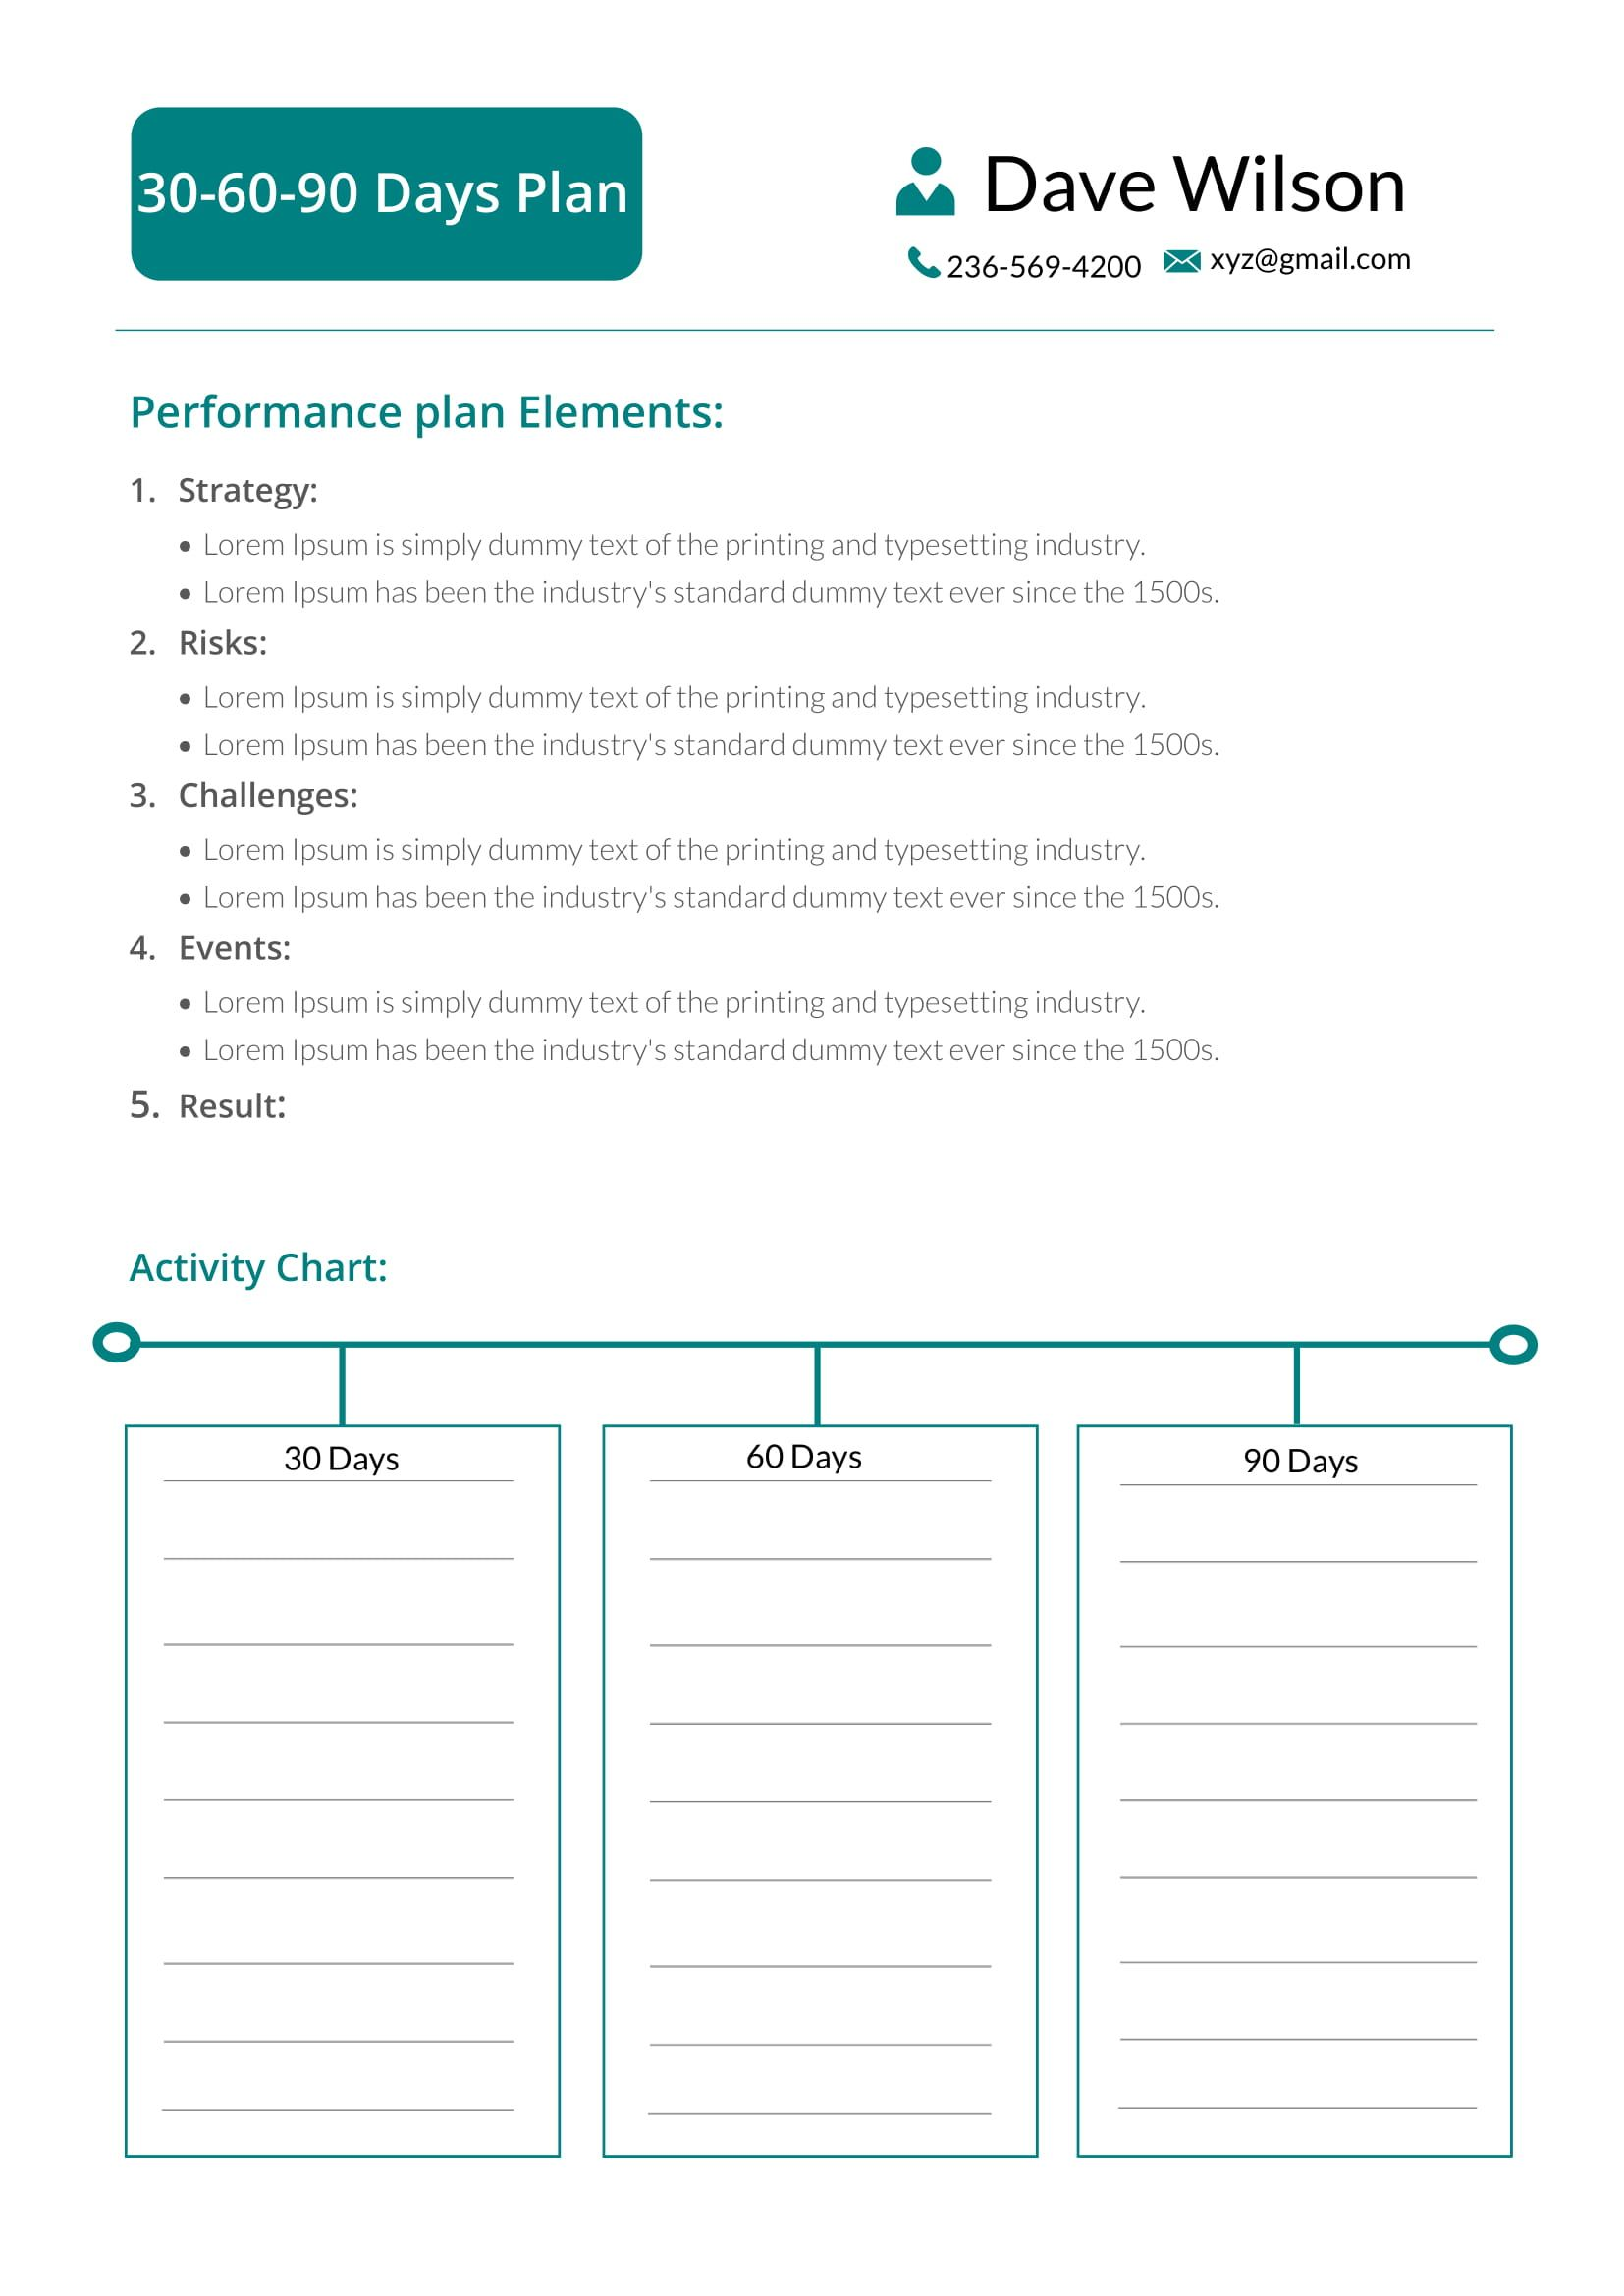 Free 30 60 90 Days Plan Template 90 day plan, Day plan